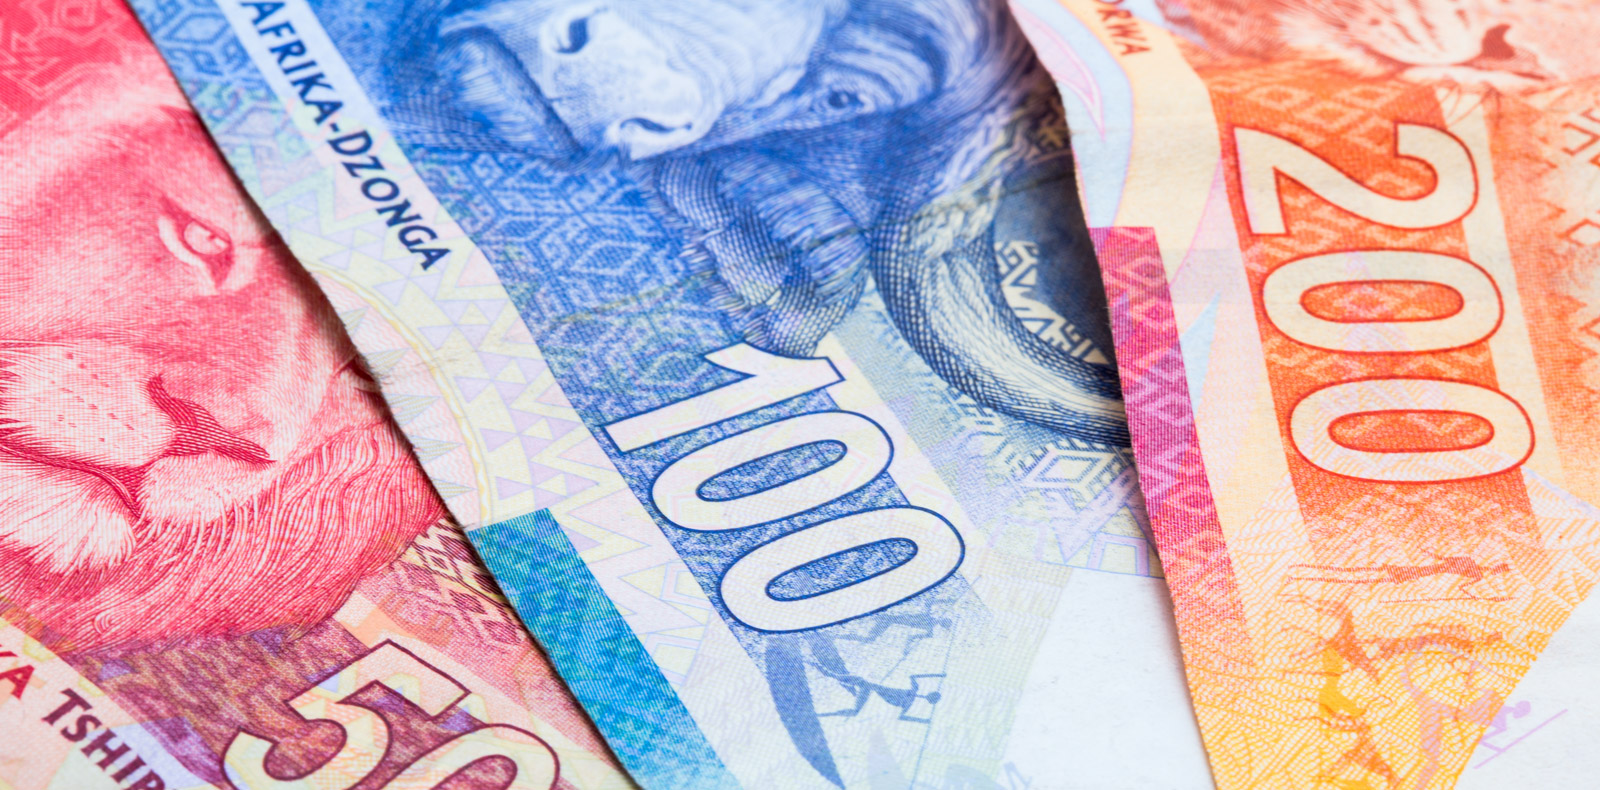 South African Rand continues to gain on the Pound